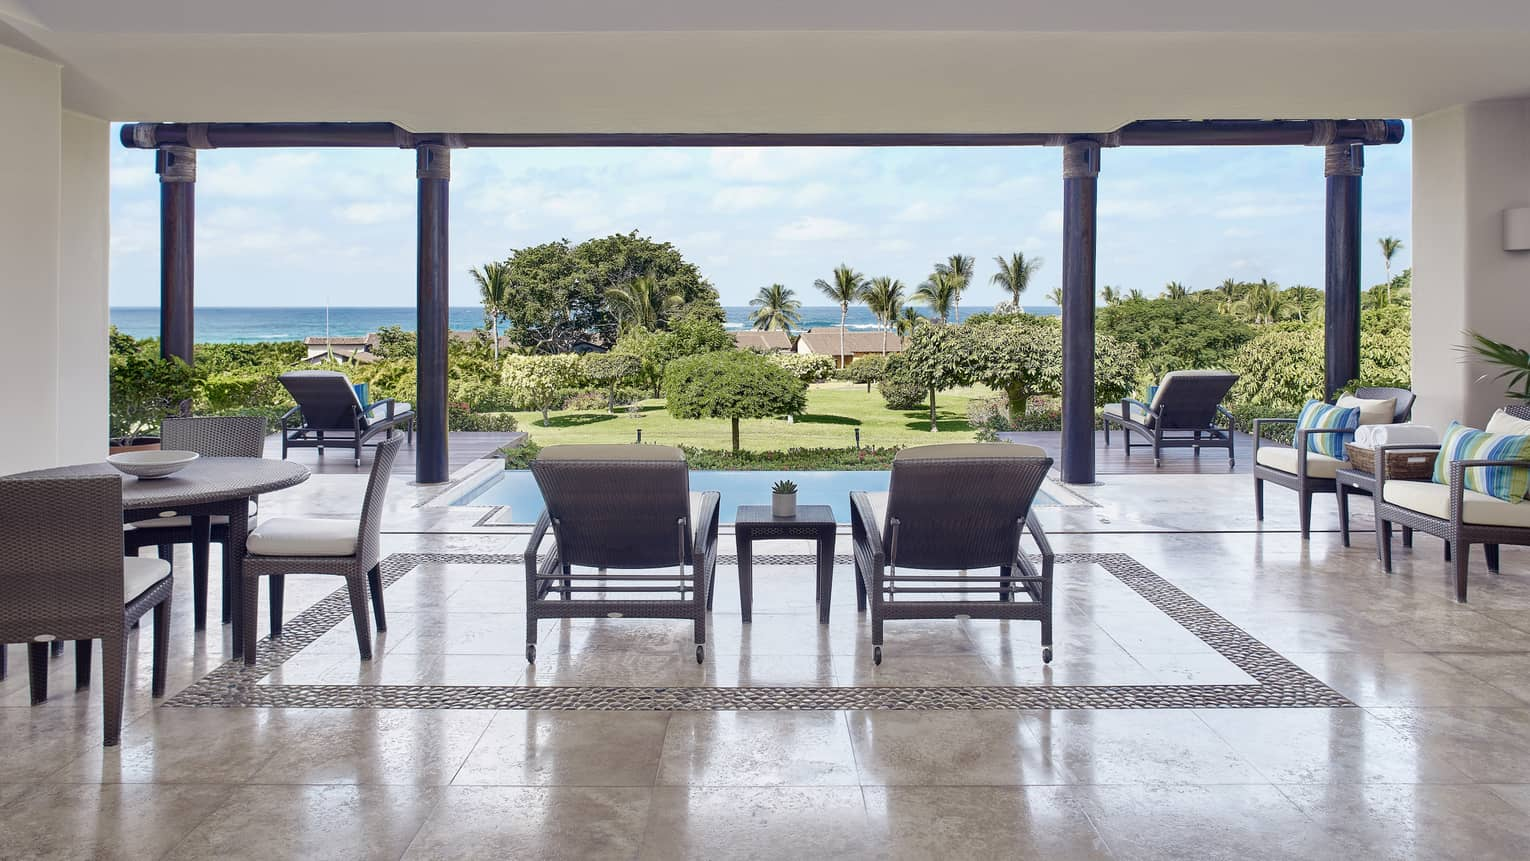 Terrace with dining table and lounge chairs, looking out to private pool and ocean in the distance